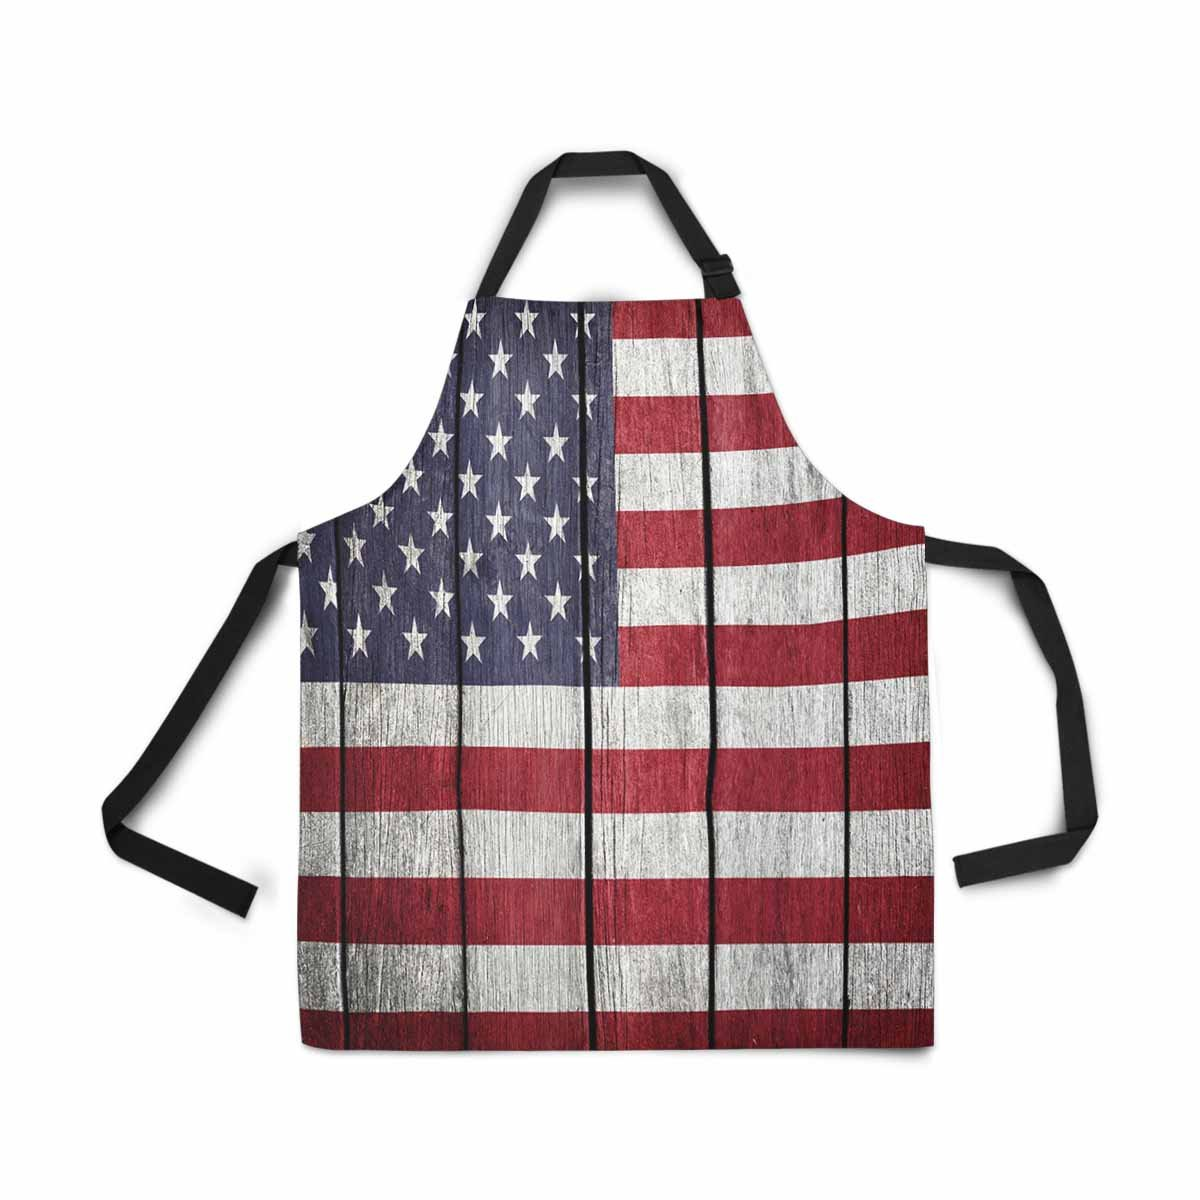 InterestPrint USA Flag United States of America Flag Old Wood Adjustable Bib Apron for Women Men Girls Chef with Pockets, Novelty Kitchen Apron for Cooking Baking Gardening Pet Grooming Cleaning